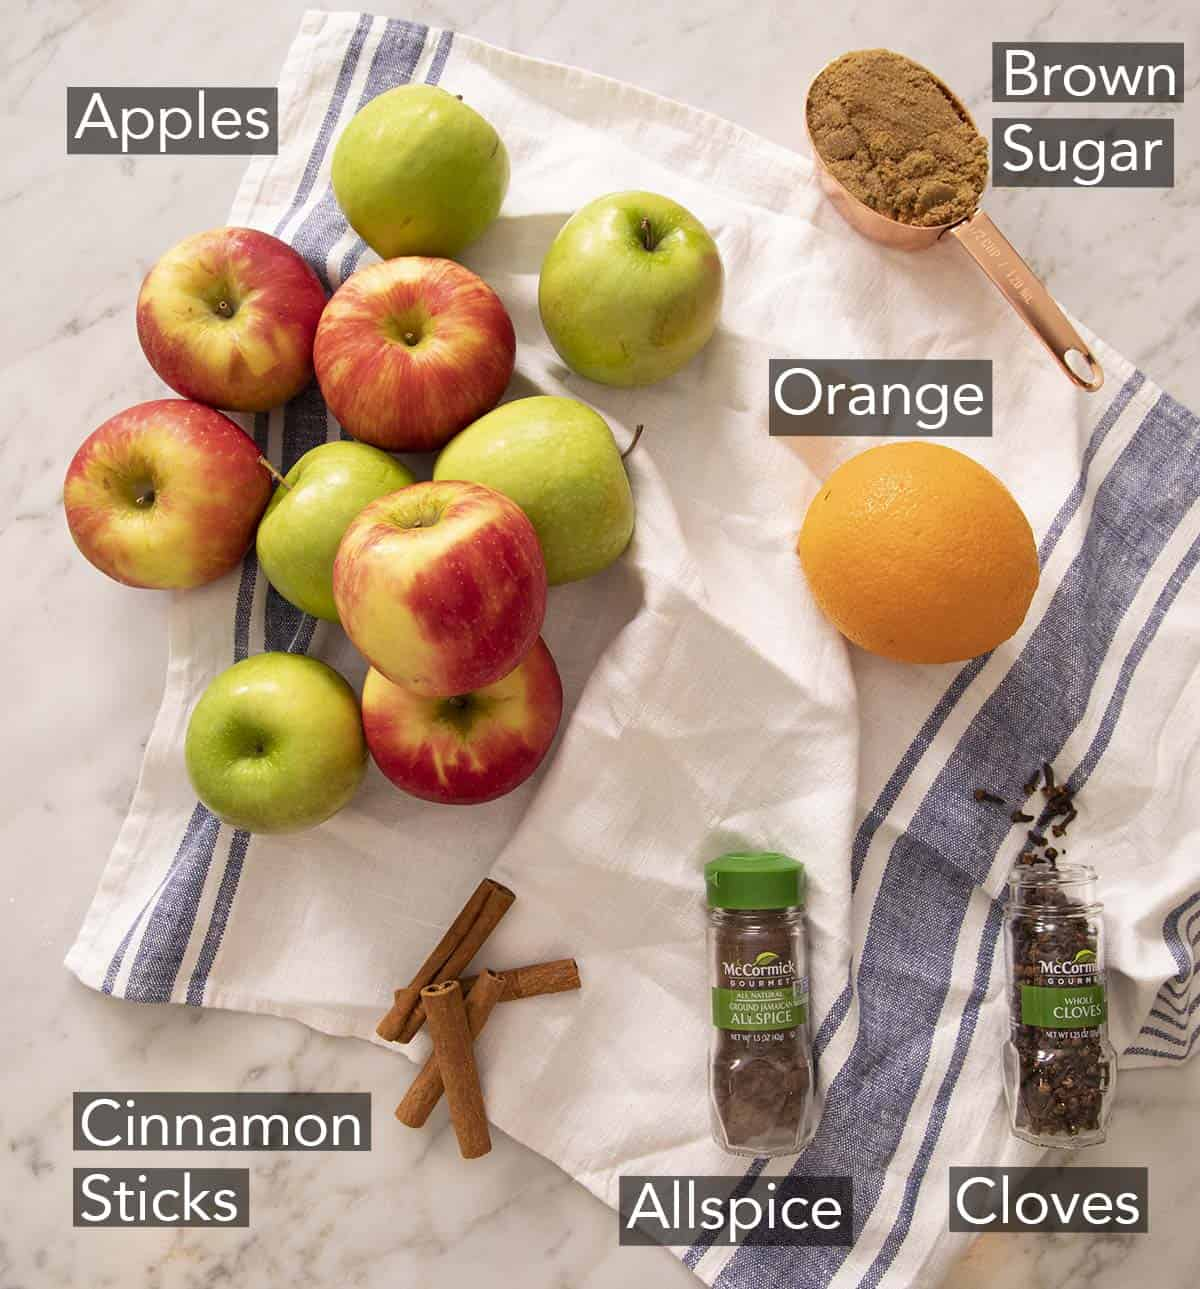 Ingredients to make apple cider on a marble counter.